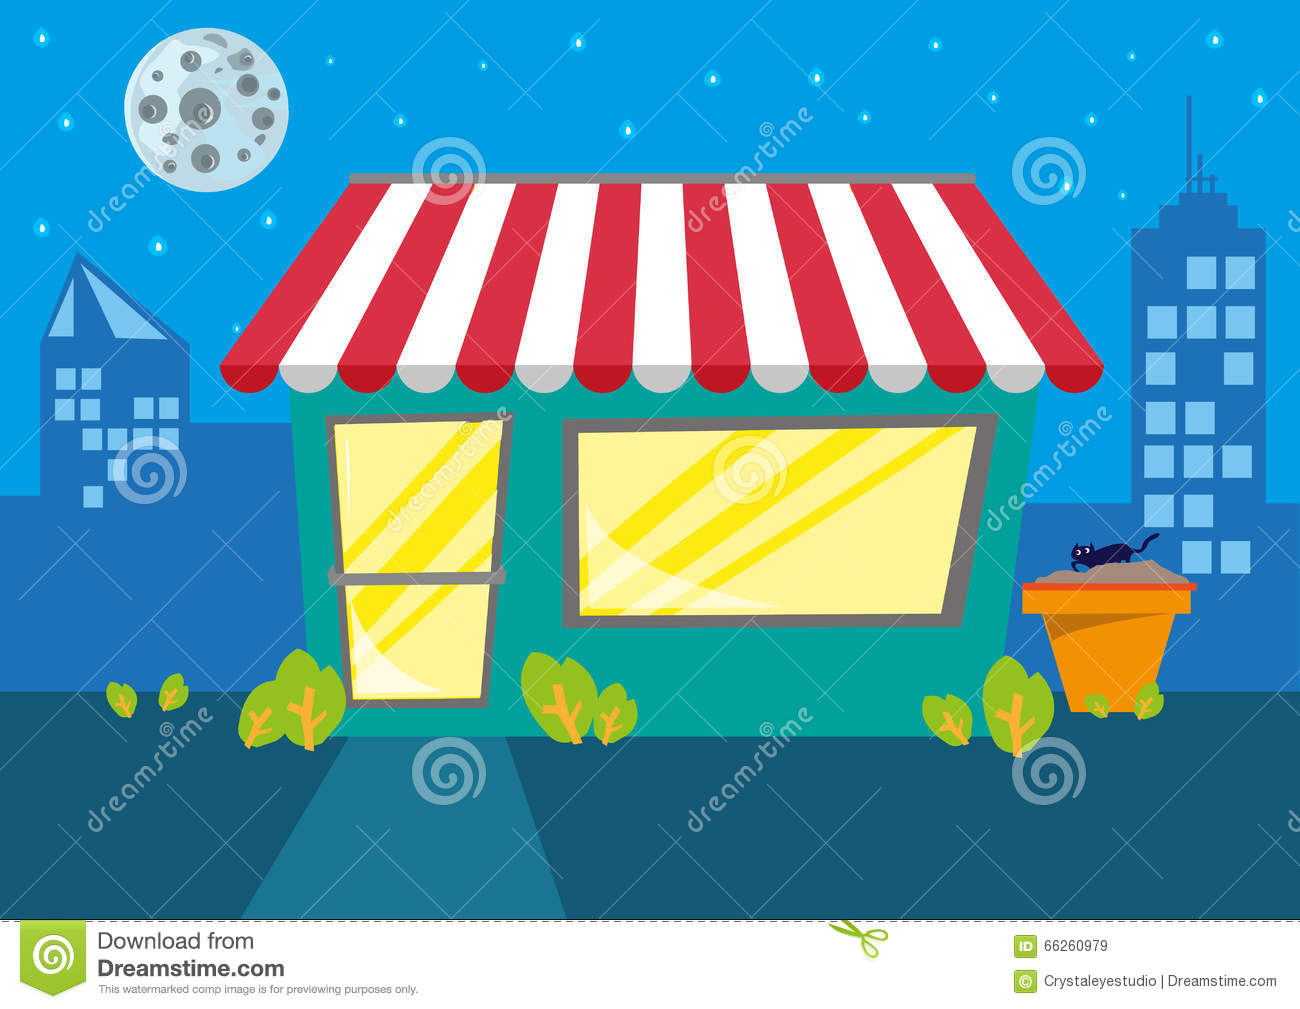 A Store Or Restaurant At Night In The City. Editable Clip Art.